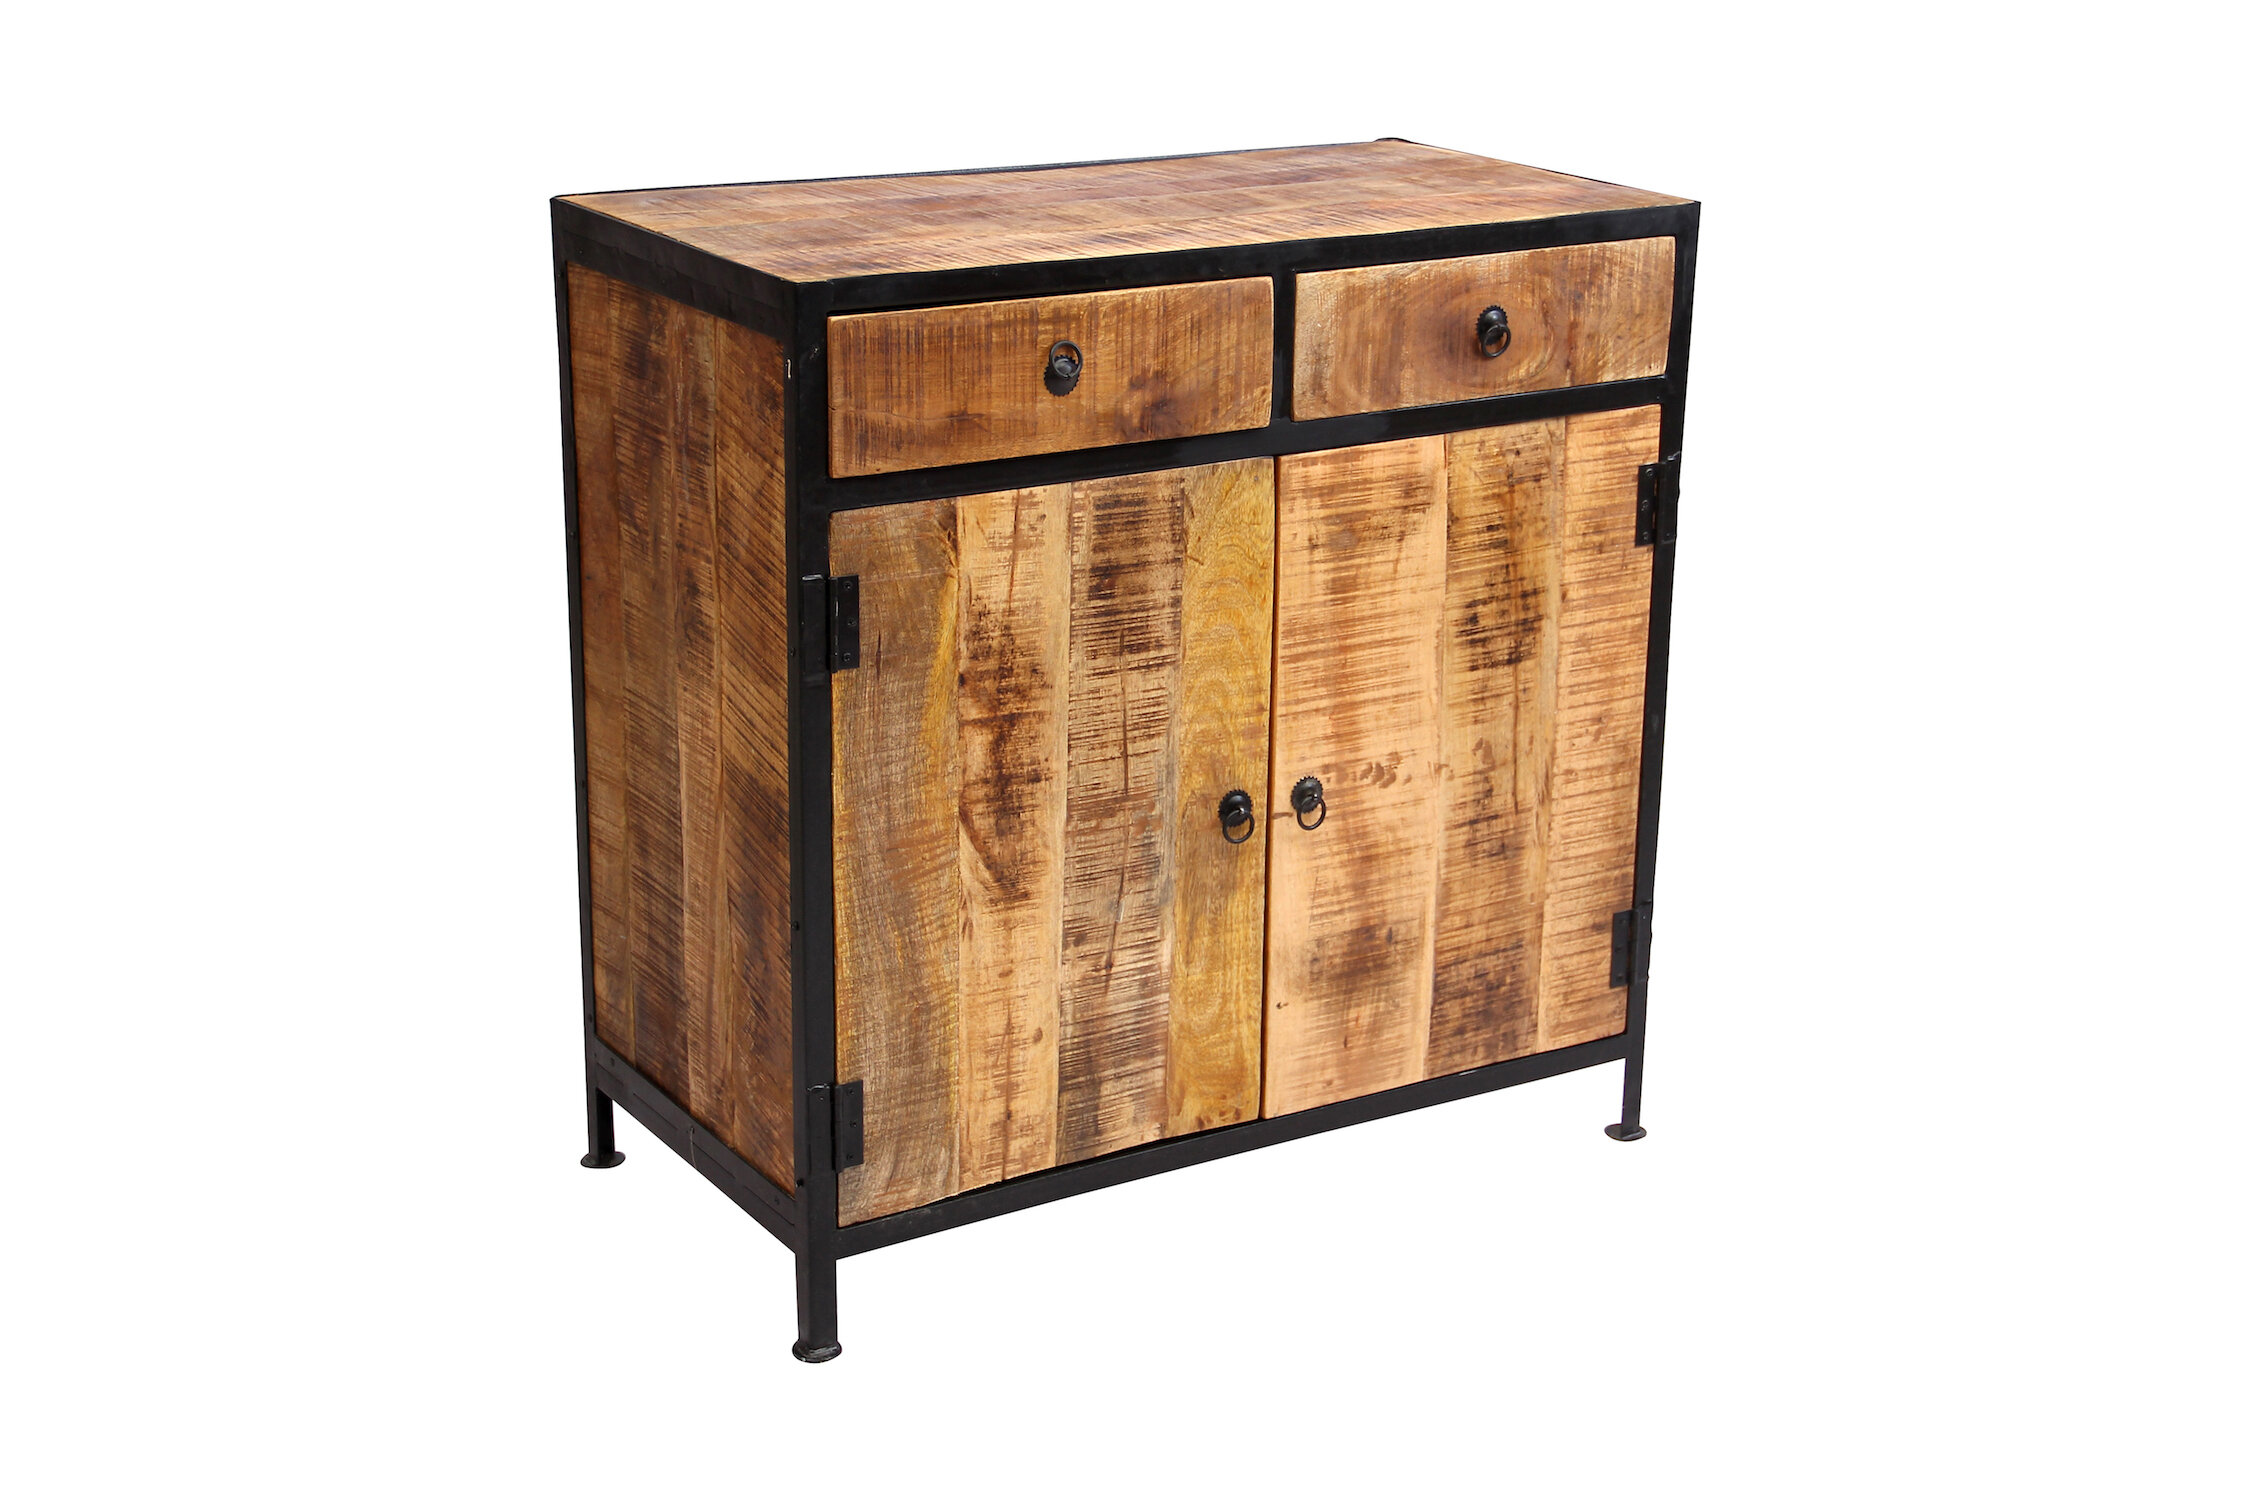 Millwood Pines Dante Reclaimed Wood And Iron 2 Drawer Sideboard Accent Cabinet Reviews Wayfair Ca